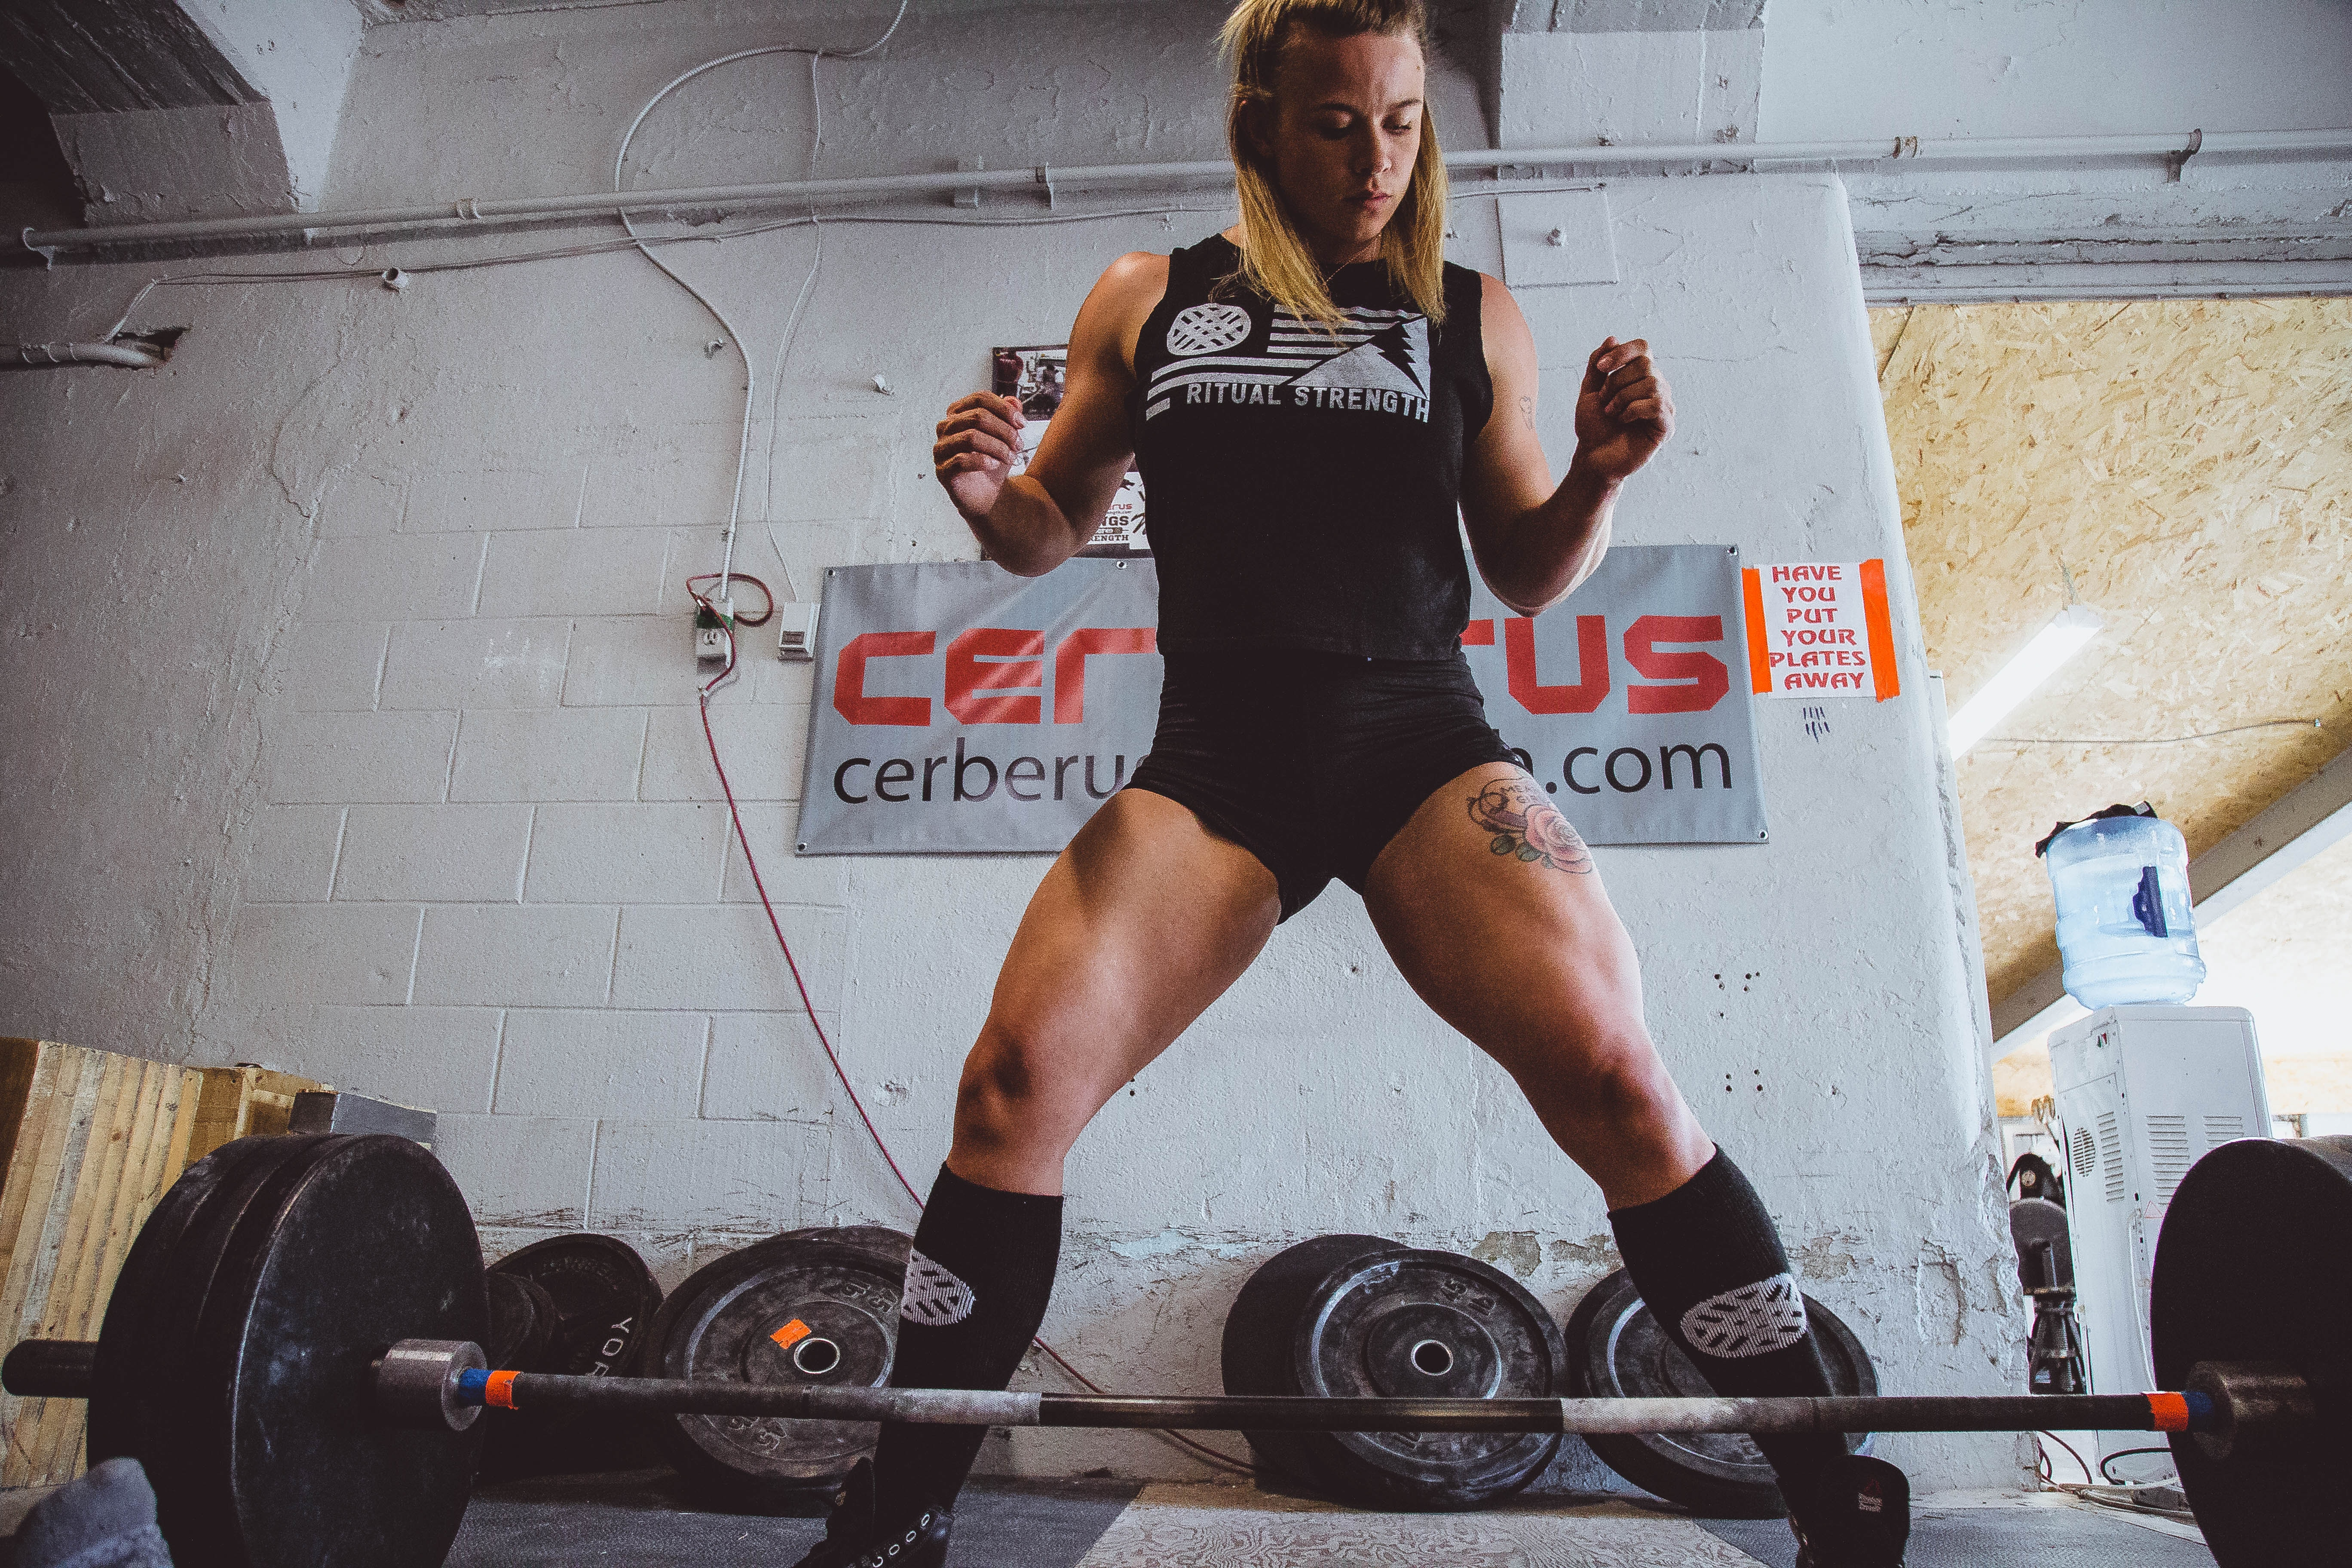 Woman Power-Lifting Weights In Gym, Bodybuilding